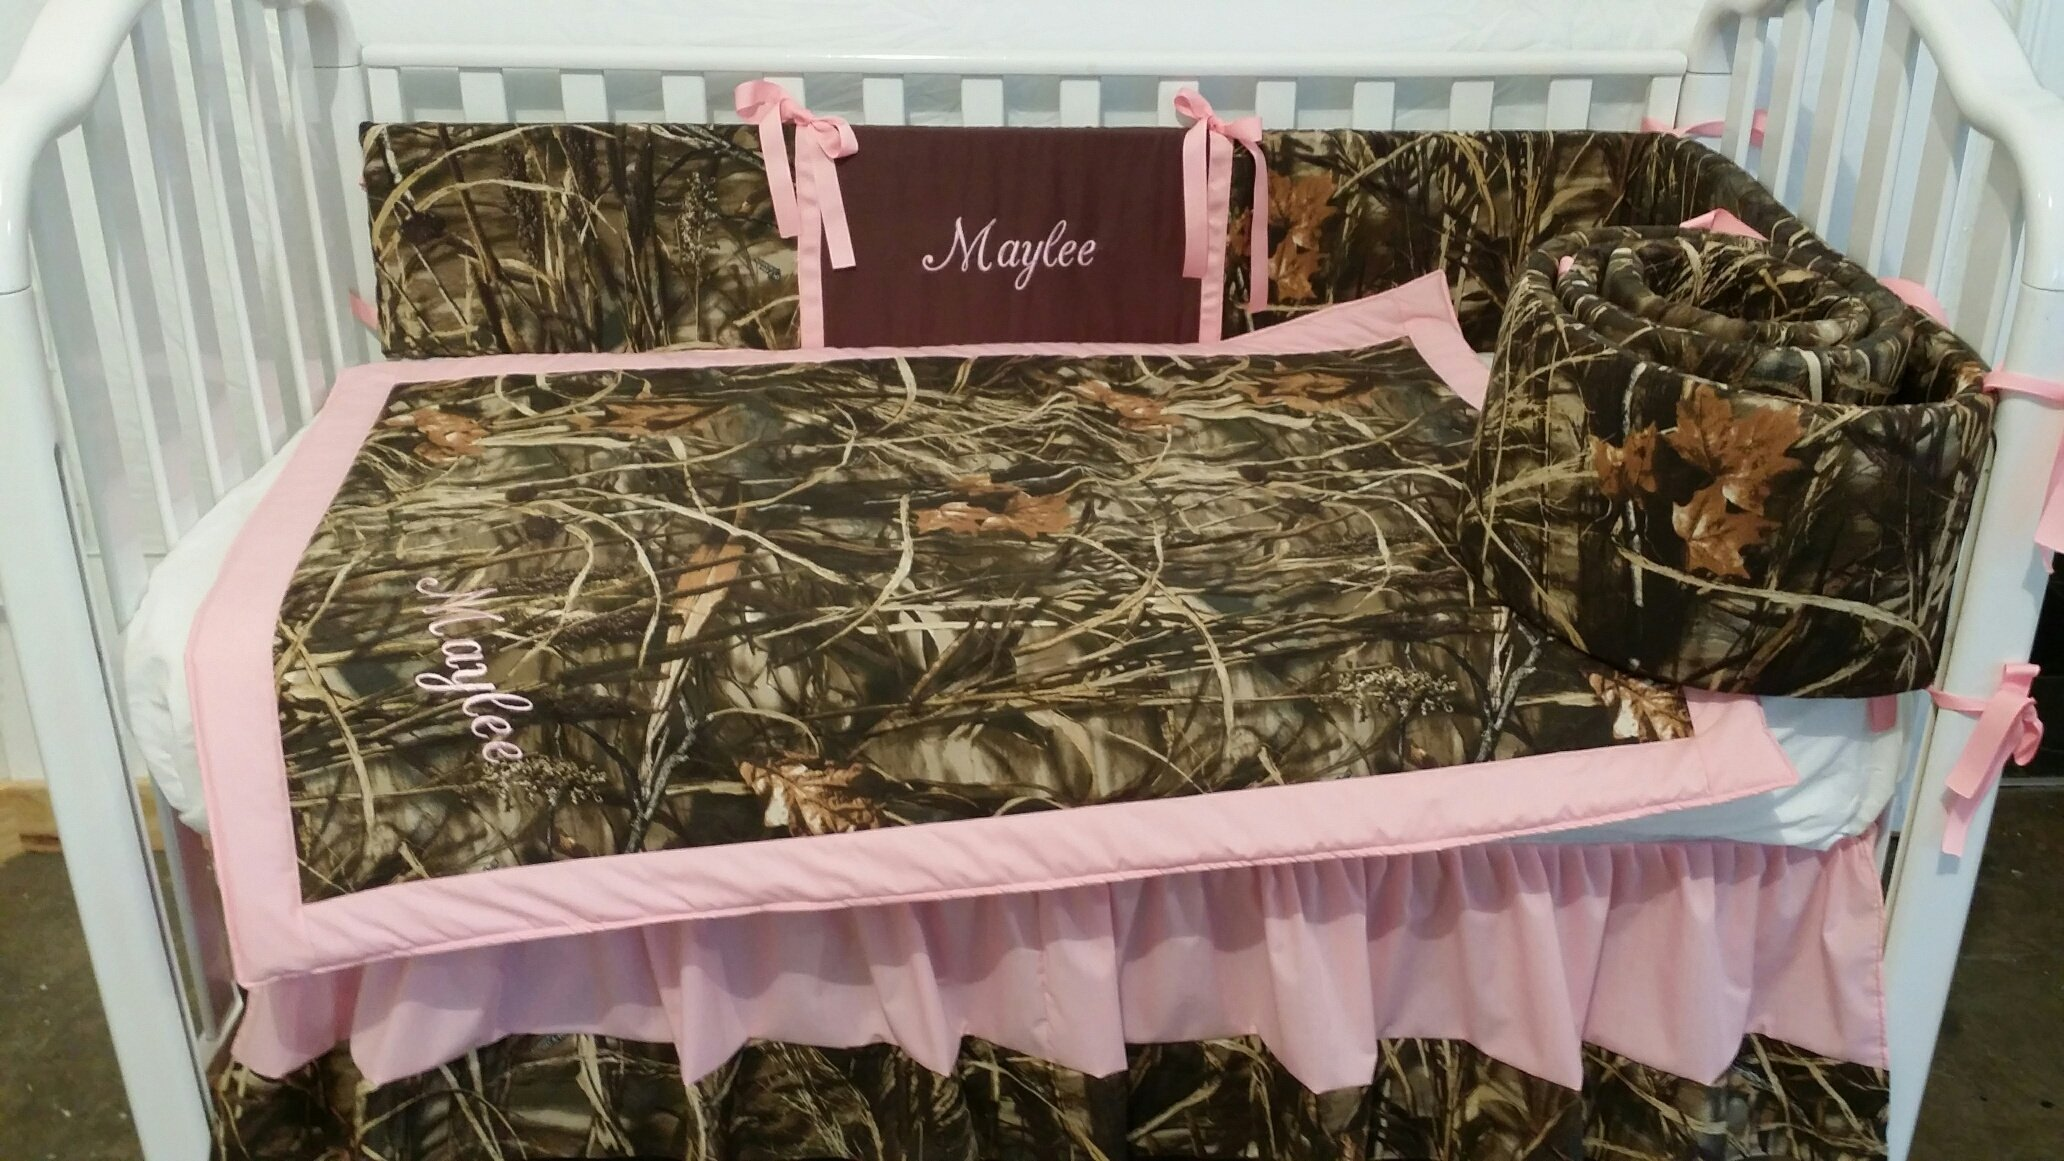 3 piece Max 4D or Max5D Duck Camouflage Crib Baby Bedding set Handmade Custom to order, Embroidered, personalized